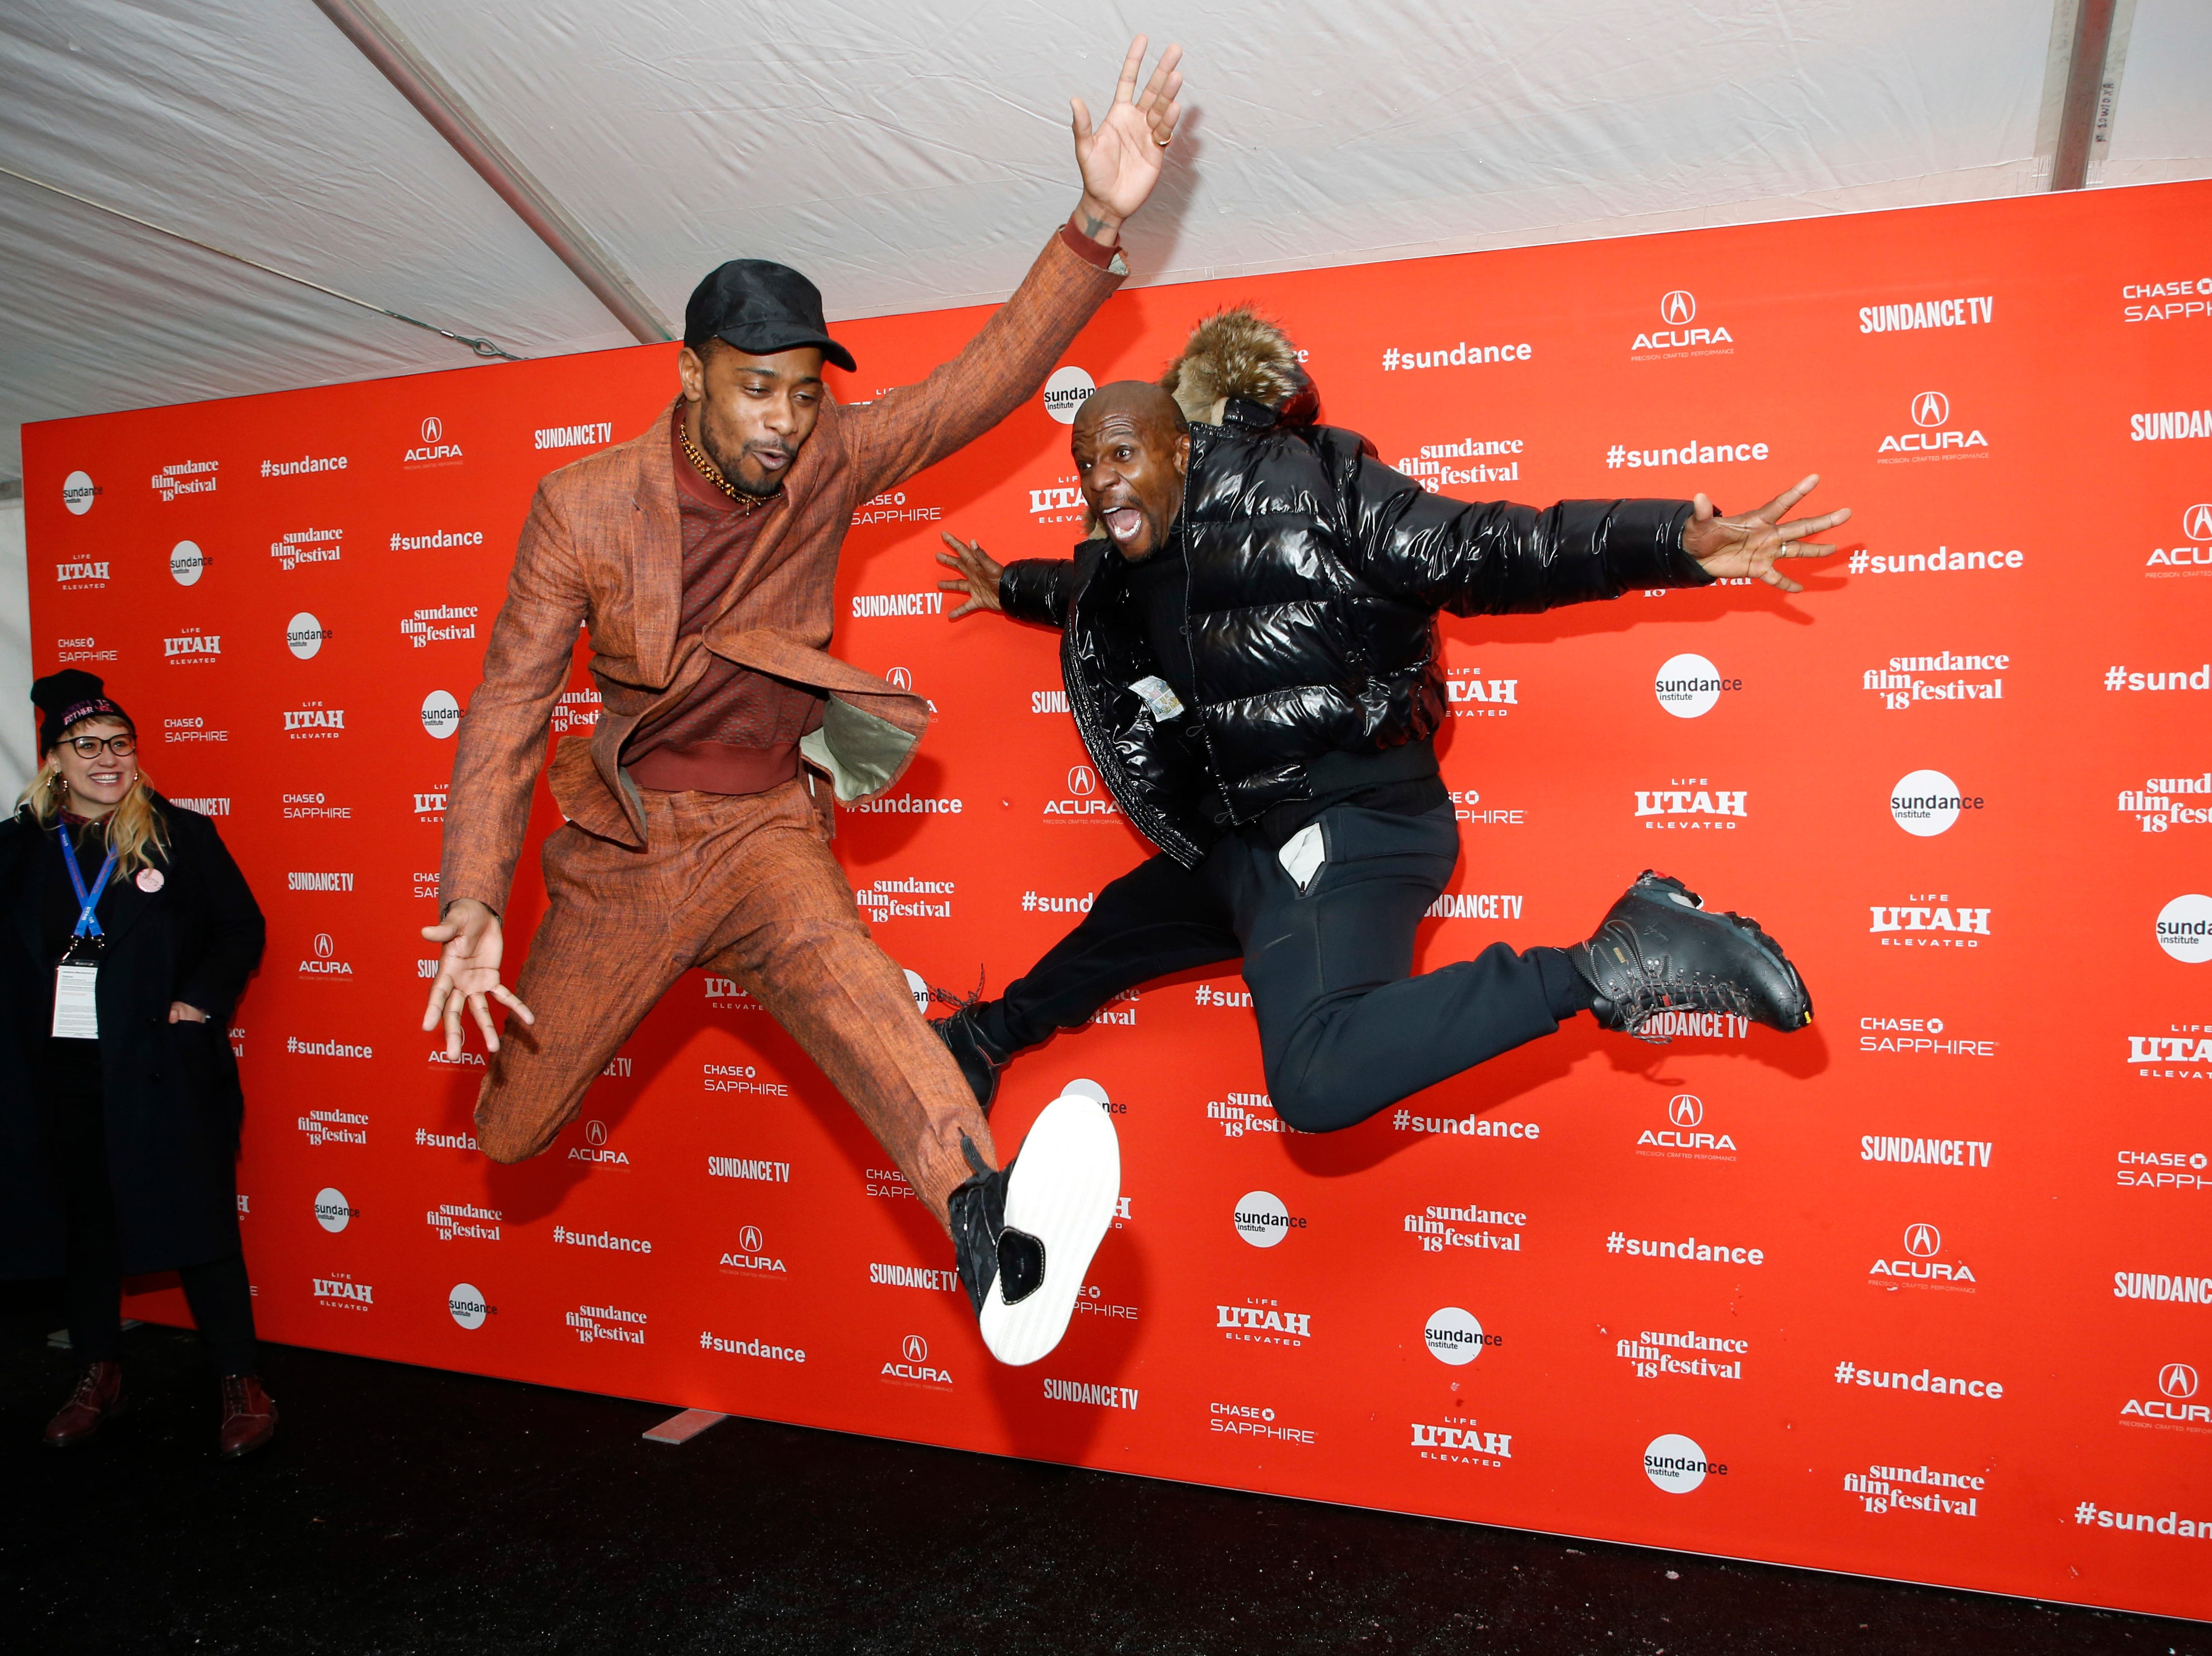 """Jan. 20: At the Sundance Film Festival premiere of """"Sorry to Bother You,""""  Lakeith Stanfield, left, joined Terry Crews for the """"Brooklyn Nine-Nine"""" star's trademark red-carpet move: jumping in the air."""